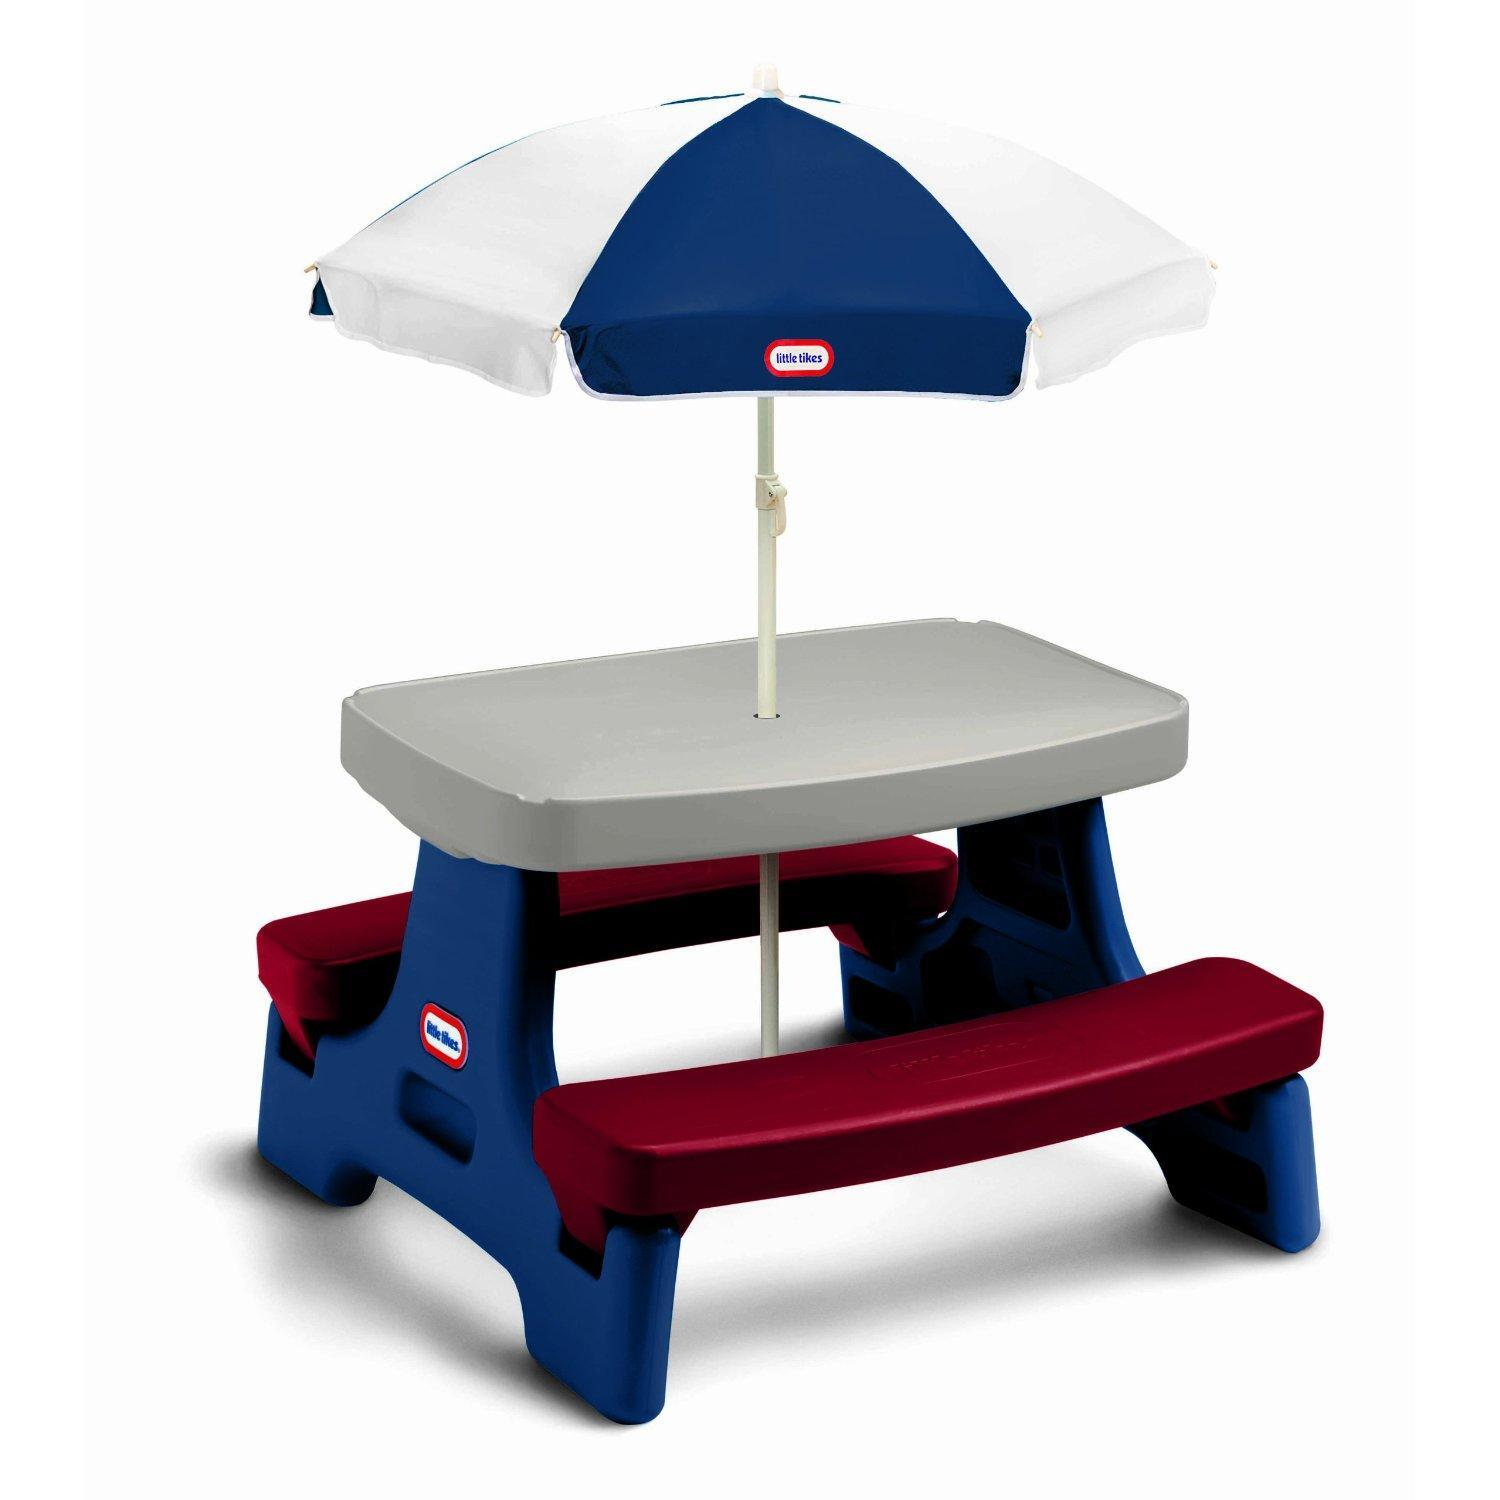 Little Tikes Junior Picnic Table : Little tikes endless adventures easy store jr table with